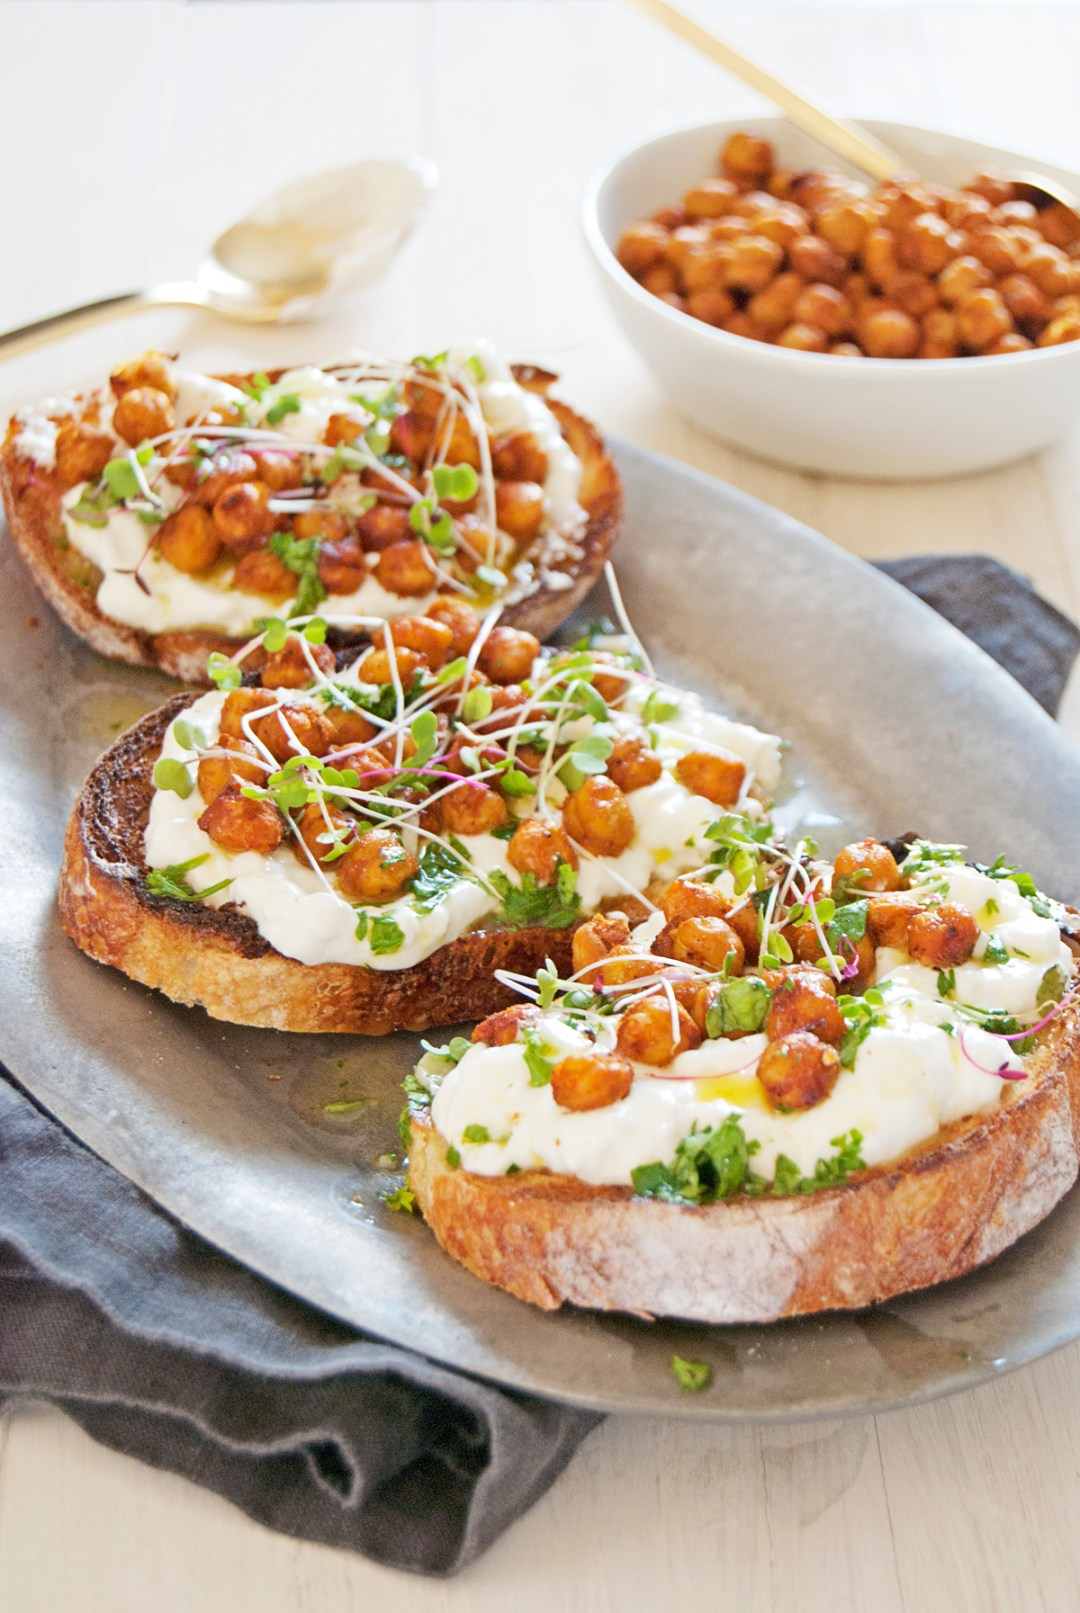 These tasty crostini feature crispy chickpea topping with Greek yogurt feta spread and a lemon and herb vinaigrette over crusty bread!